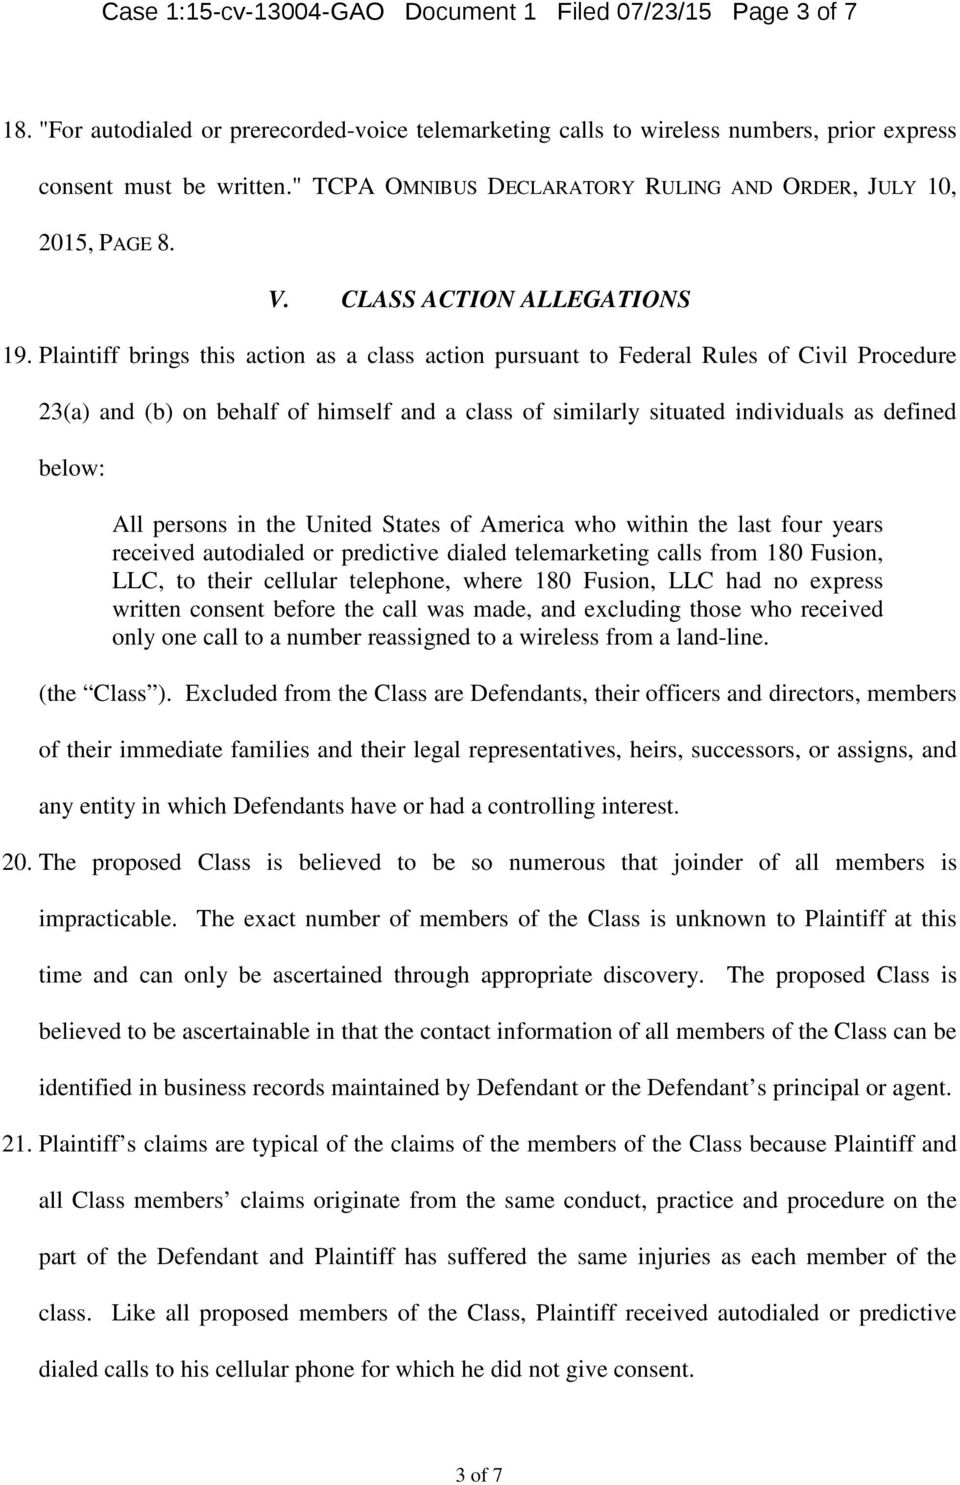 Plaintiff brings this action as a class action pursuant to Federal Rules of Civil Procedure 23(a and (b on behalf of himself and a class of similarly situated individuals as defined below: All